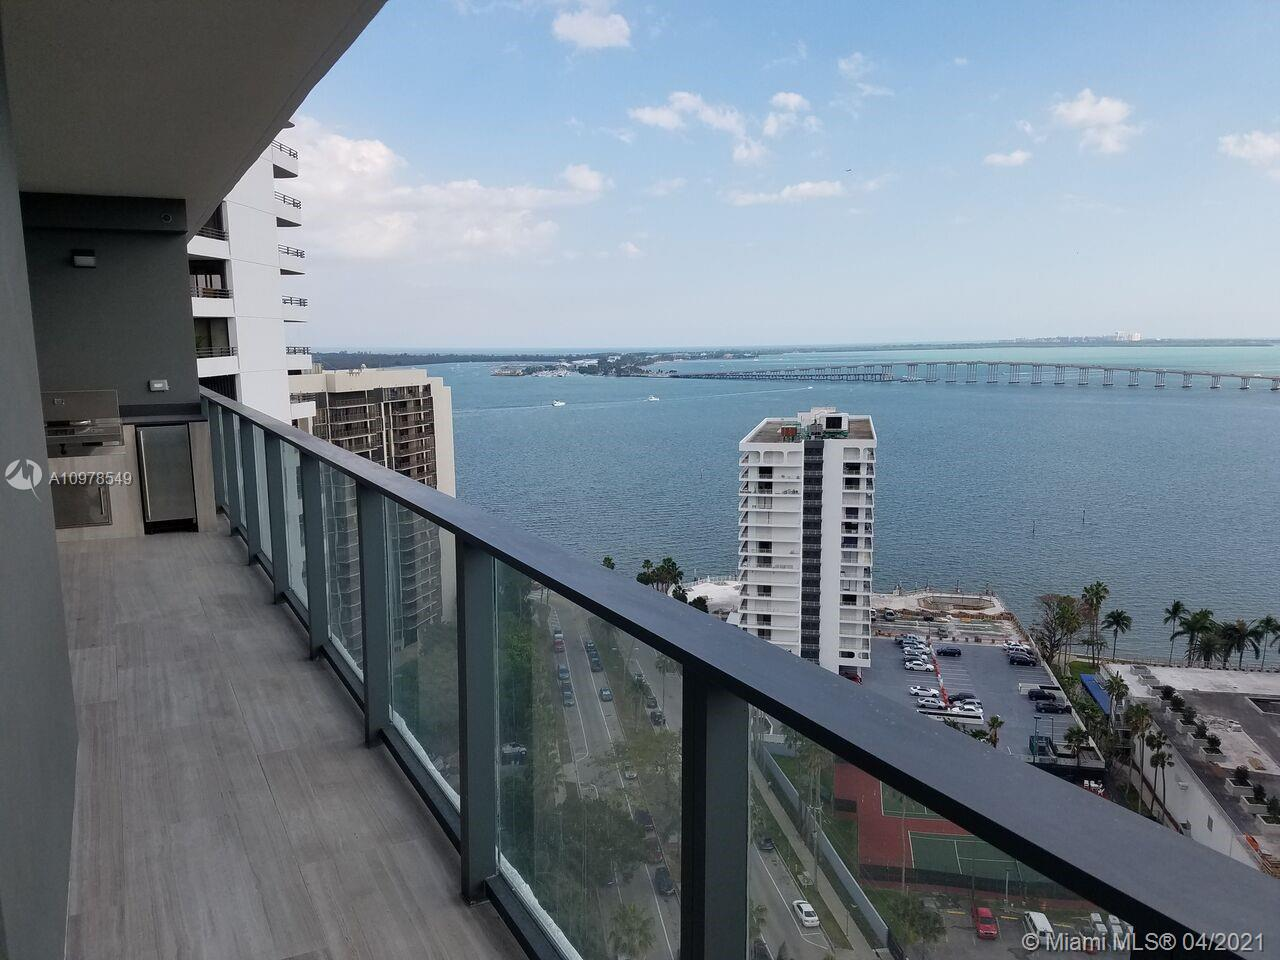 SPECTACULAR OPPORTUNITY TO OWN THIS HIGH END RESIDENCE AT PRESTIGIOUS ECHO BRICKELL BUILDING. 1 BED 1.5 BATHS. TOP OF THE LINE APPLAINCES, HIGH END FINISHES, BUILT IN CLOSETS, BLINDS, LIGHTINING HUGE TERRACE WITH STAINLESS STEEL GRILL! SMART BUILIDNG WITH 5 STAR AMENITIES SUCH AS FITNESS CENTER, OLYMPIC POOLS, HOT TUB, AND MORE! WON'T LAST!